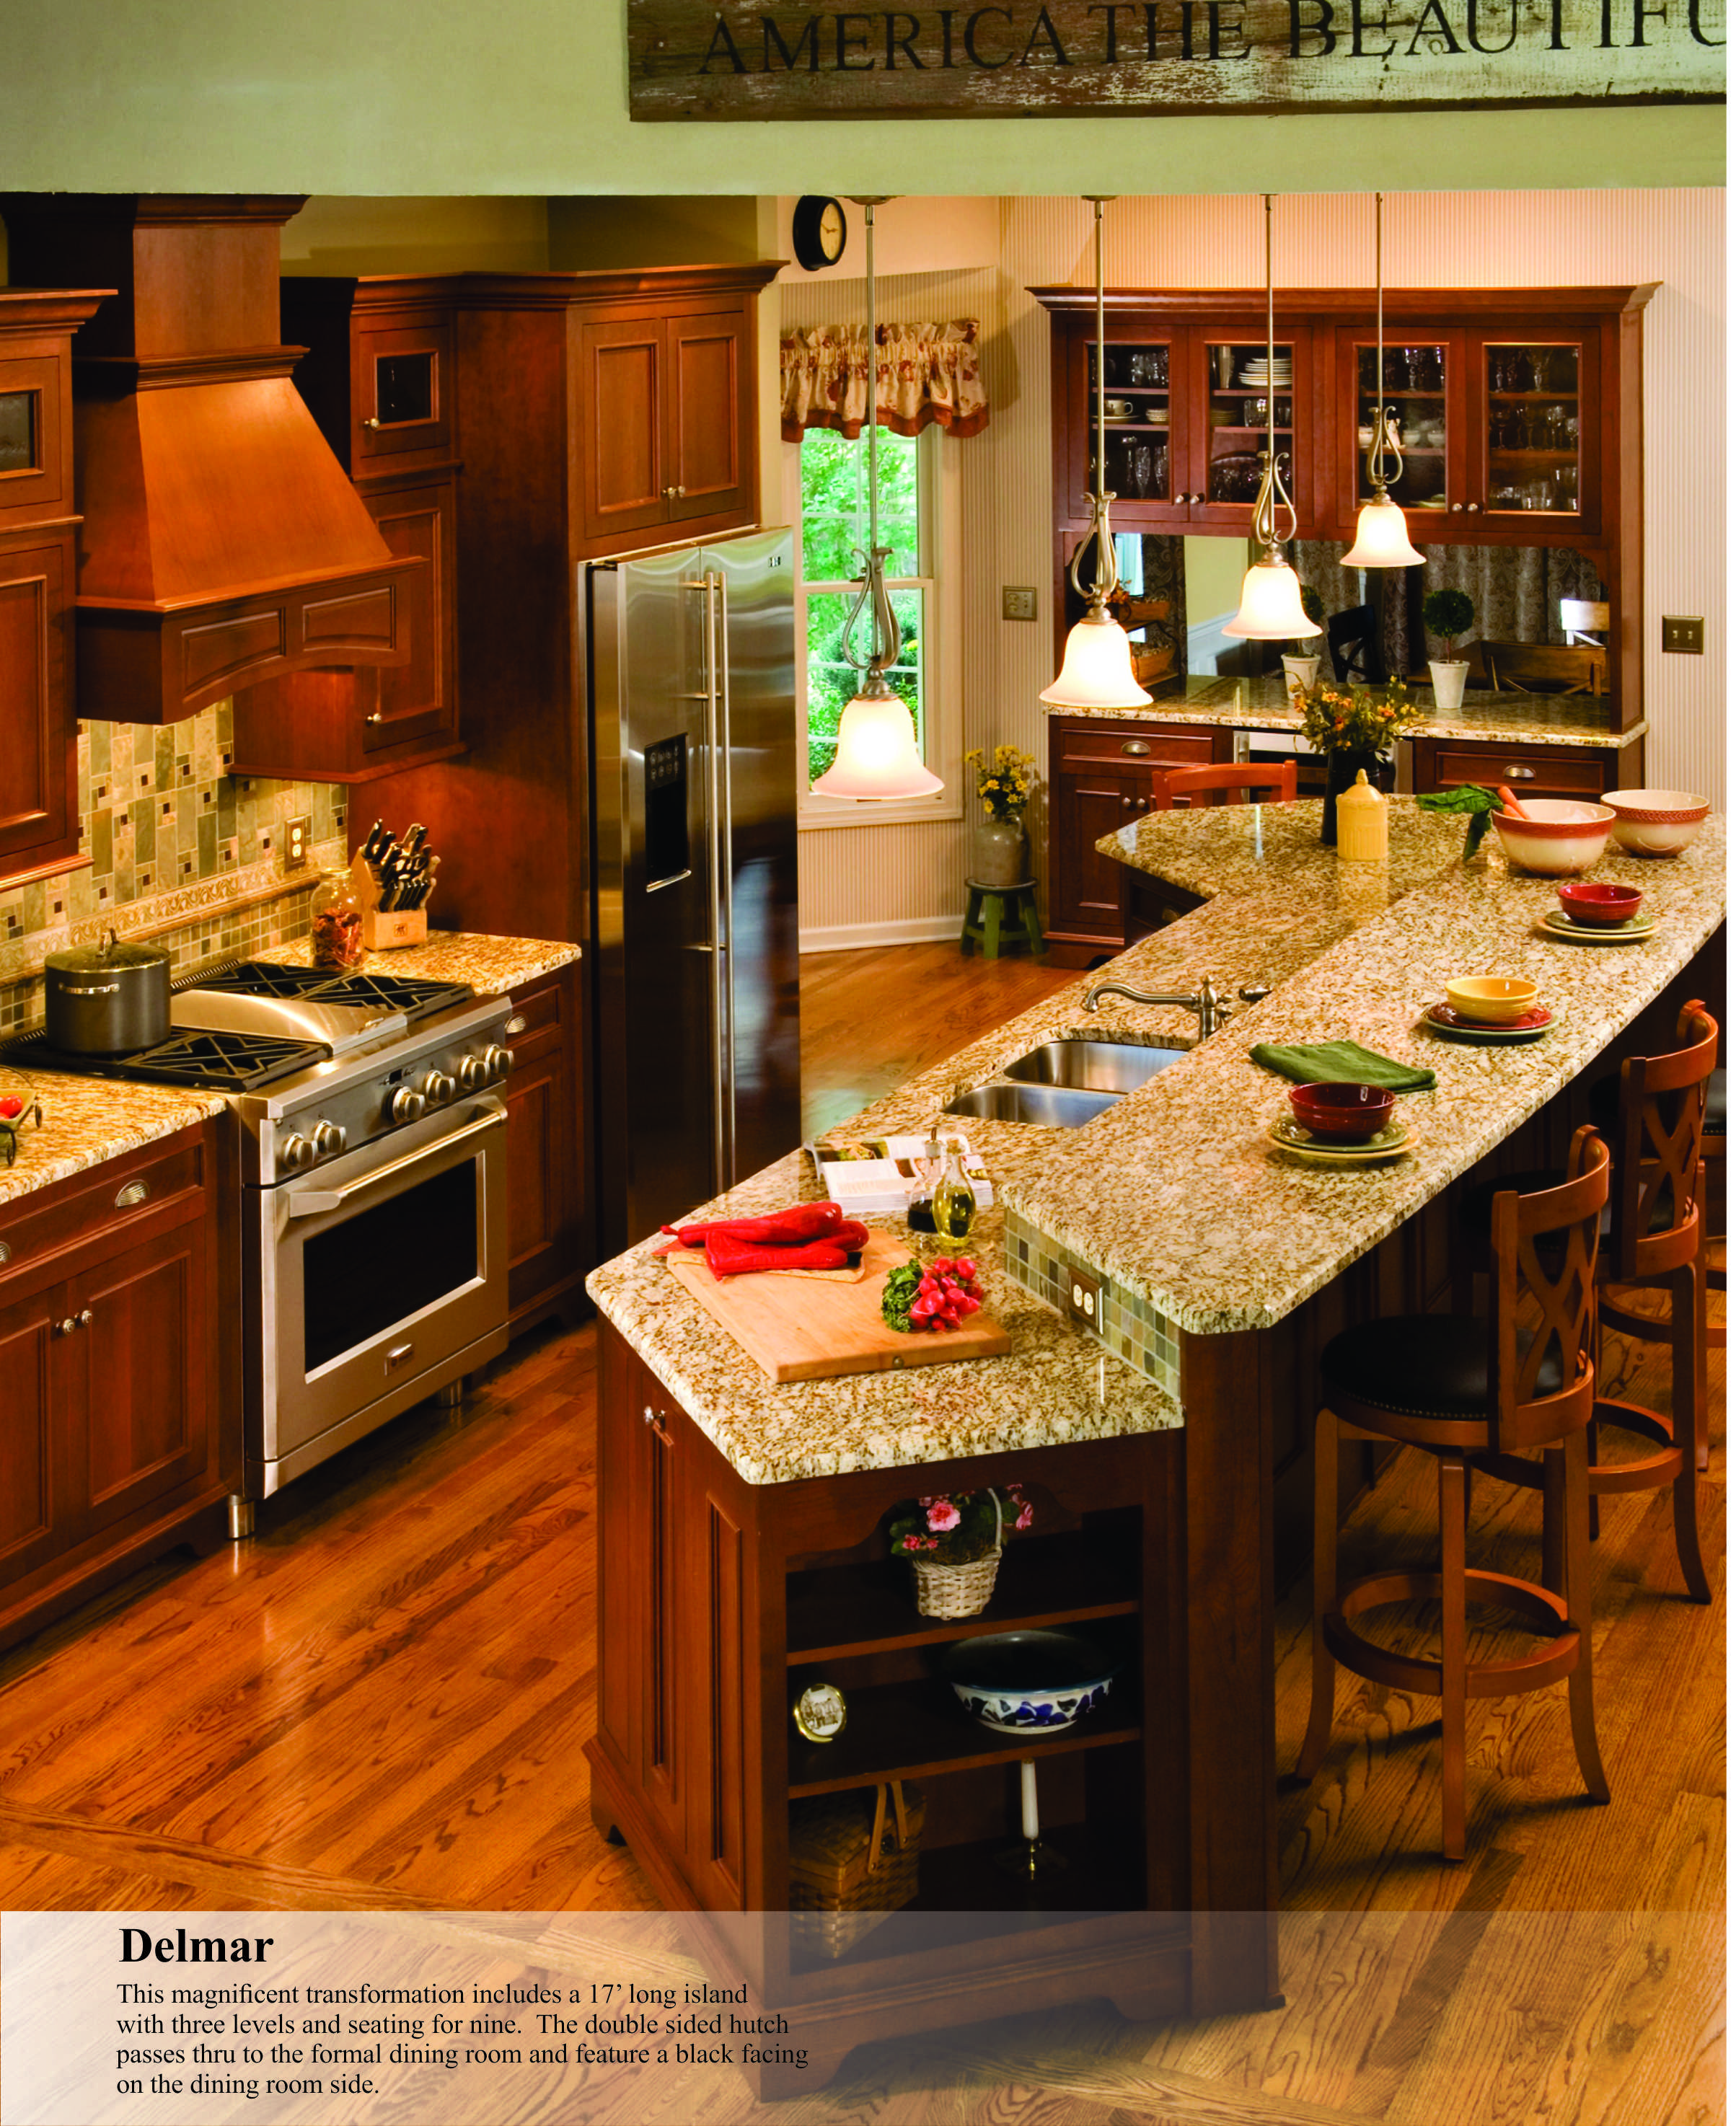 Kitchen and bath world custom kitchen designs albany ny for Kitchen 452 cincinnati